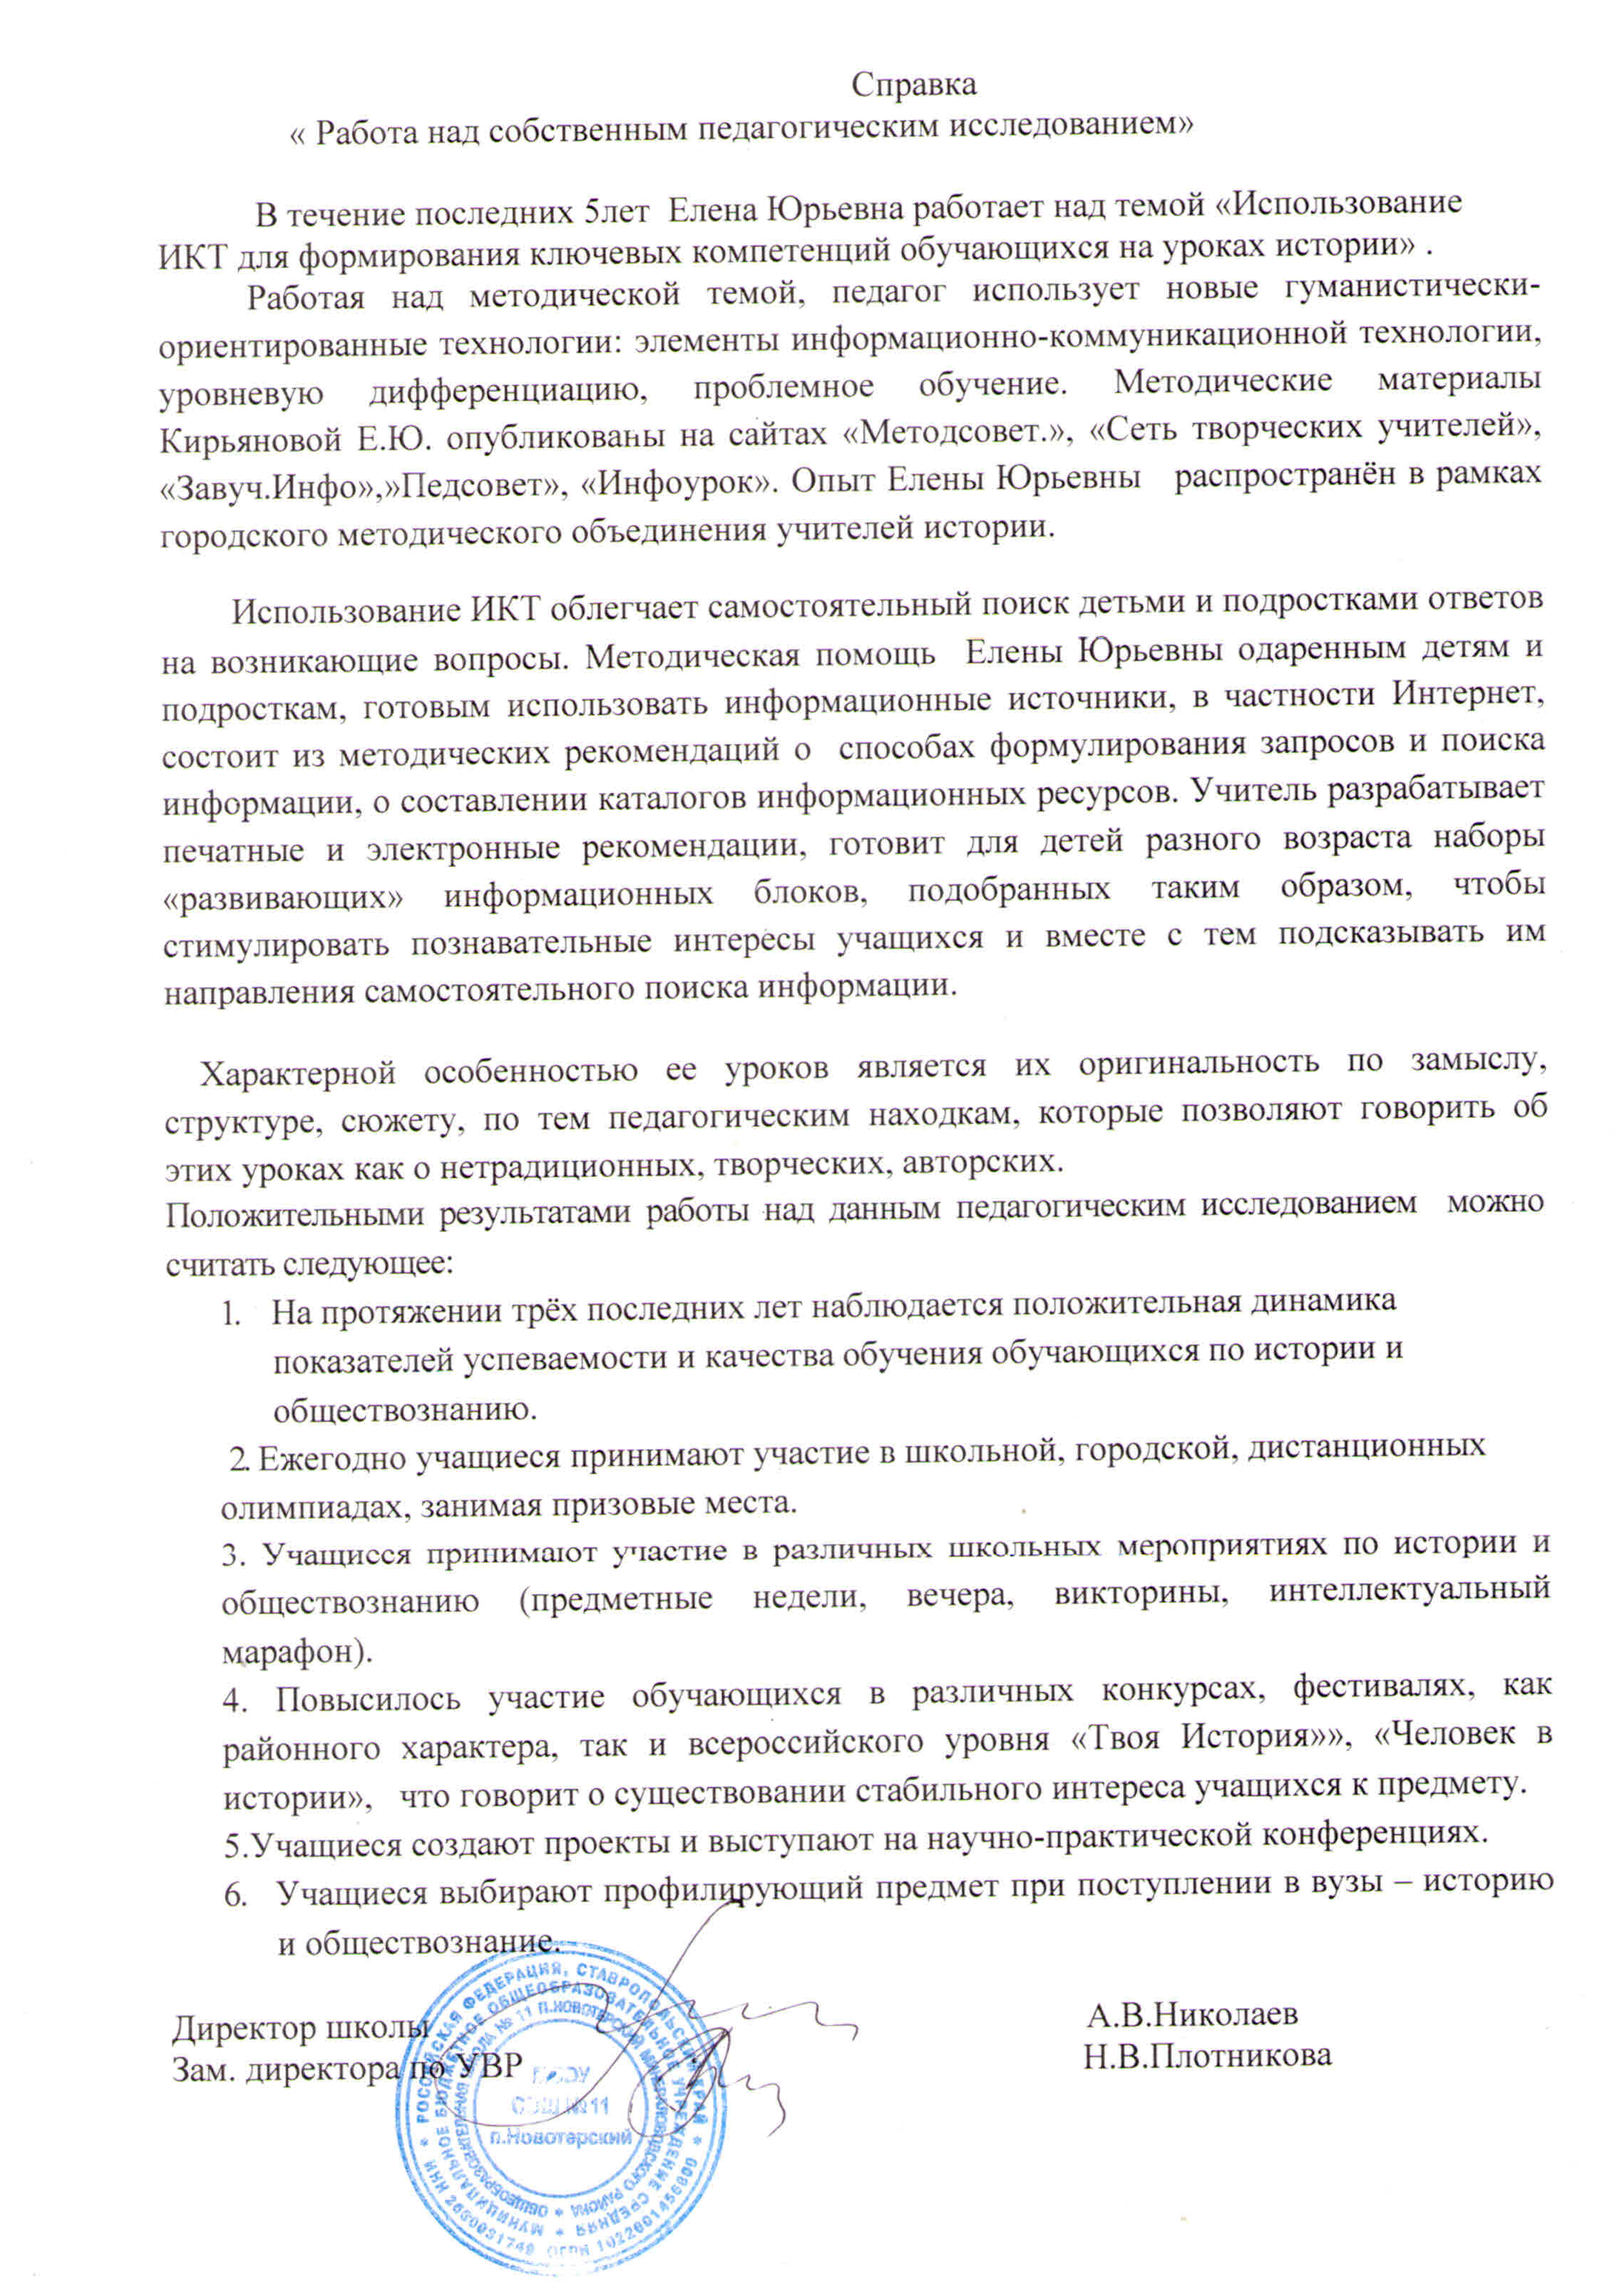 C:\Users\Сергей\Desktop\Document_0.jpg